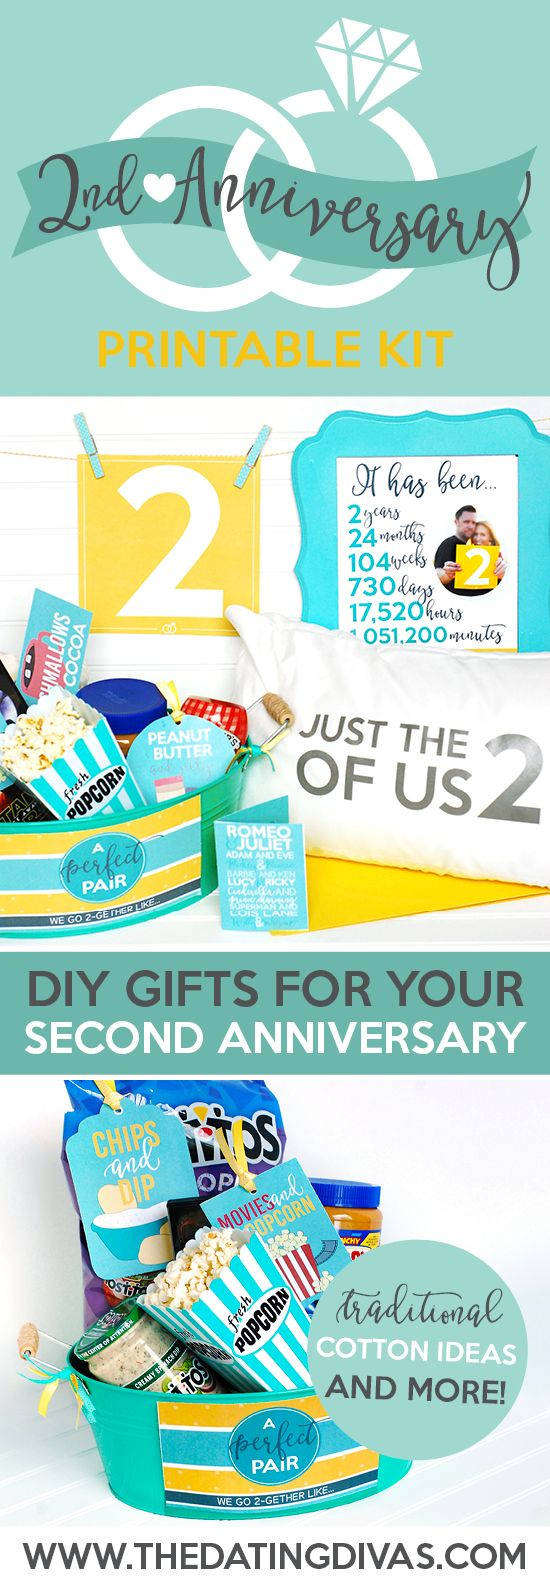 Second Wedding Anniversary Gifts For Husband: Second Anniversary Gift Printable Kit